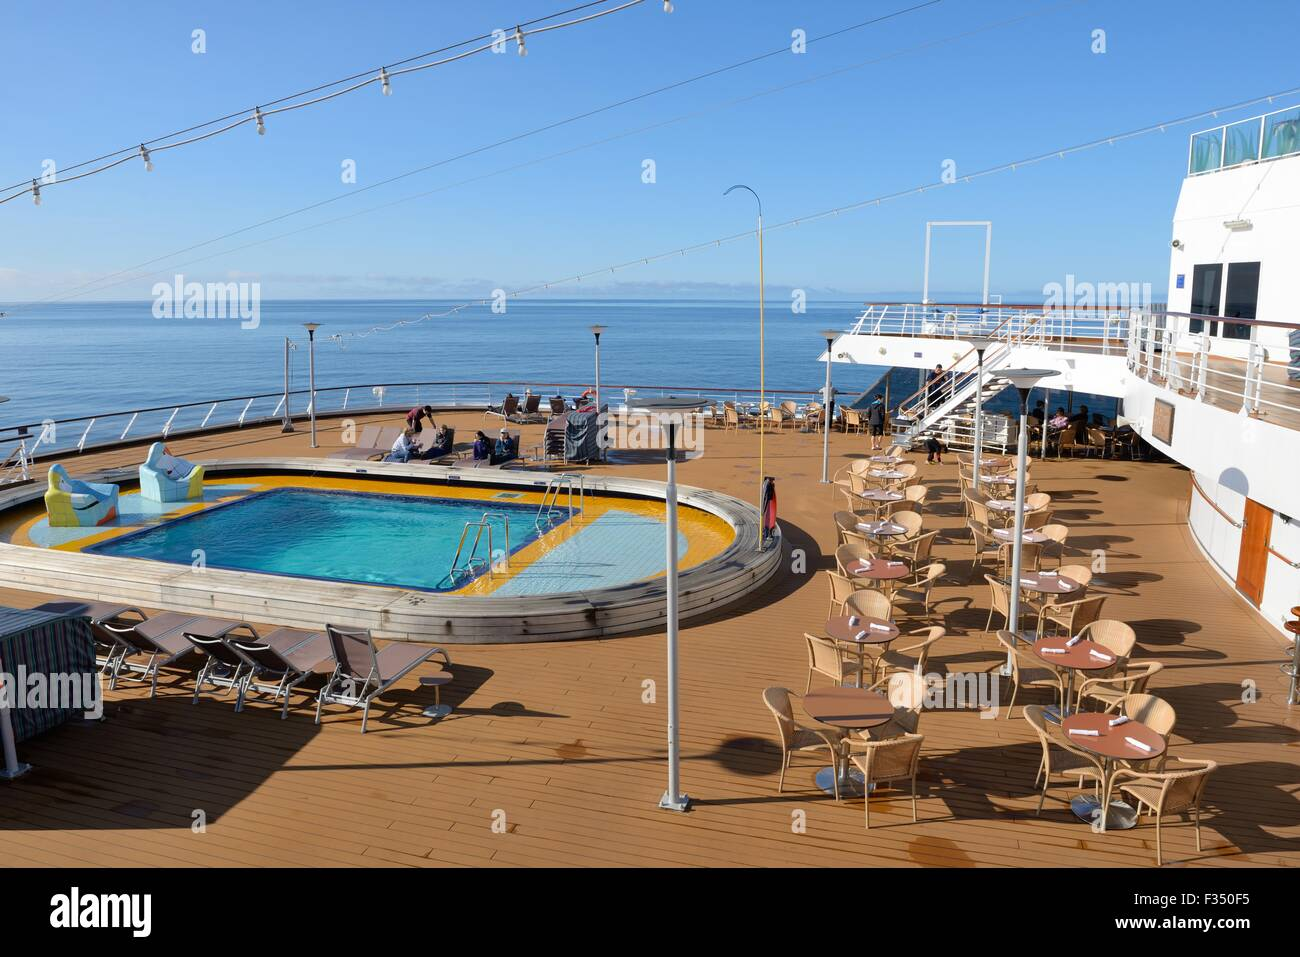 Swimming Pool On The Deck Of The Cruise Ship Volendam Stock Photo Royalty Free Image 88005993